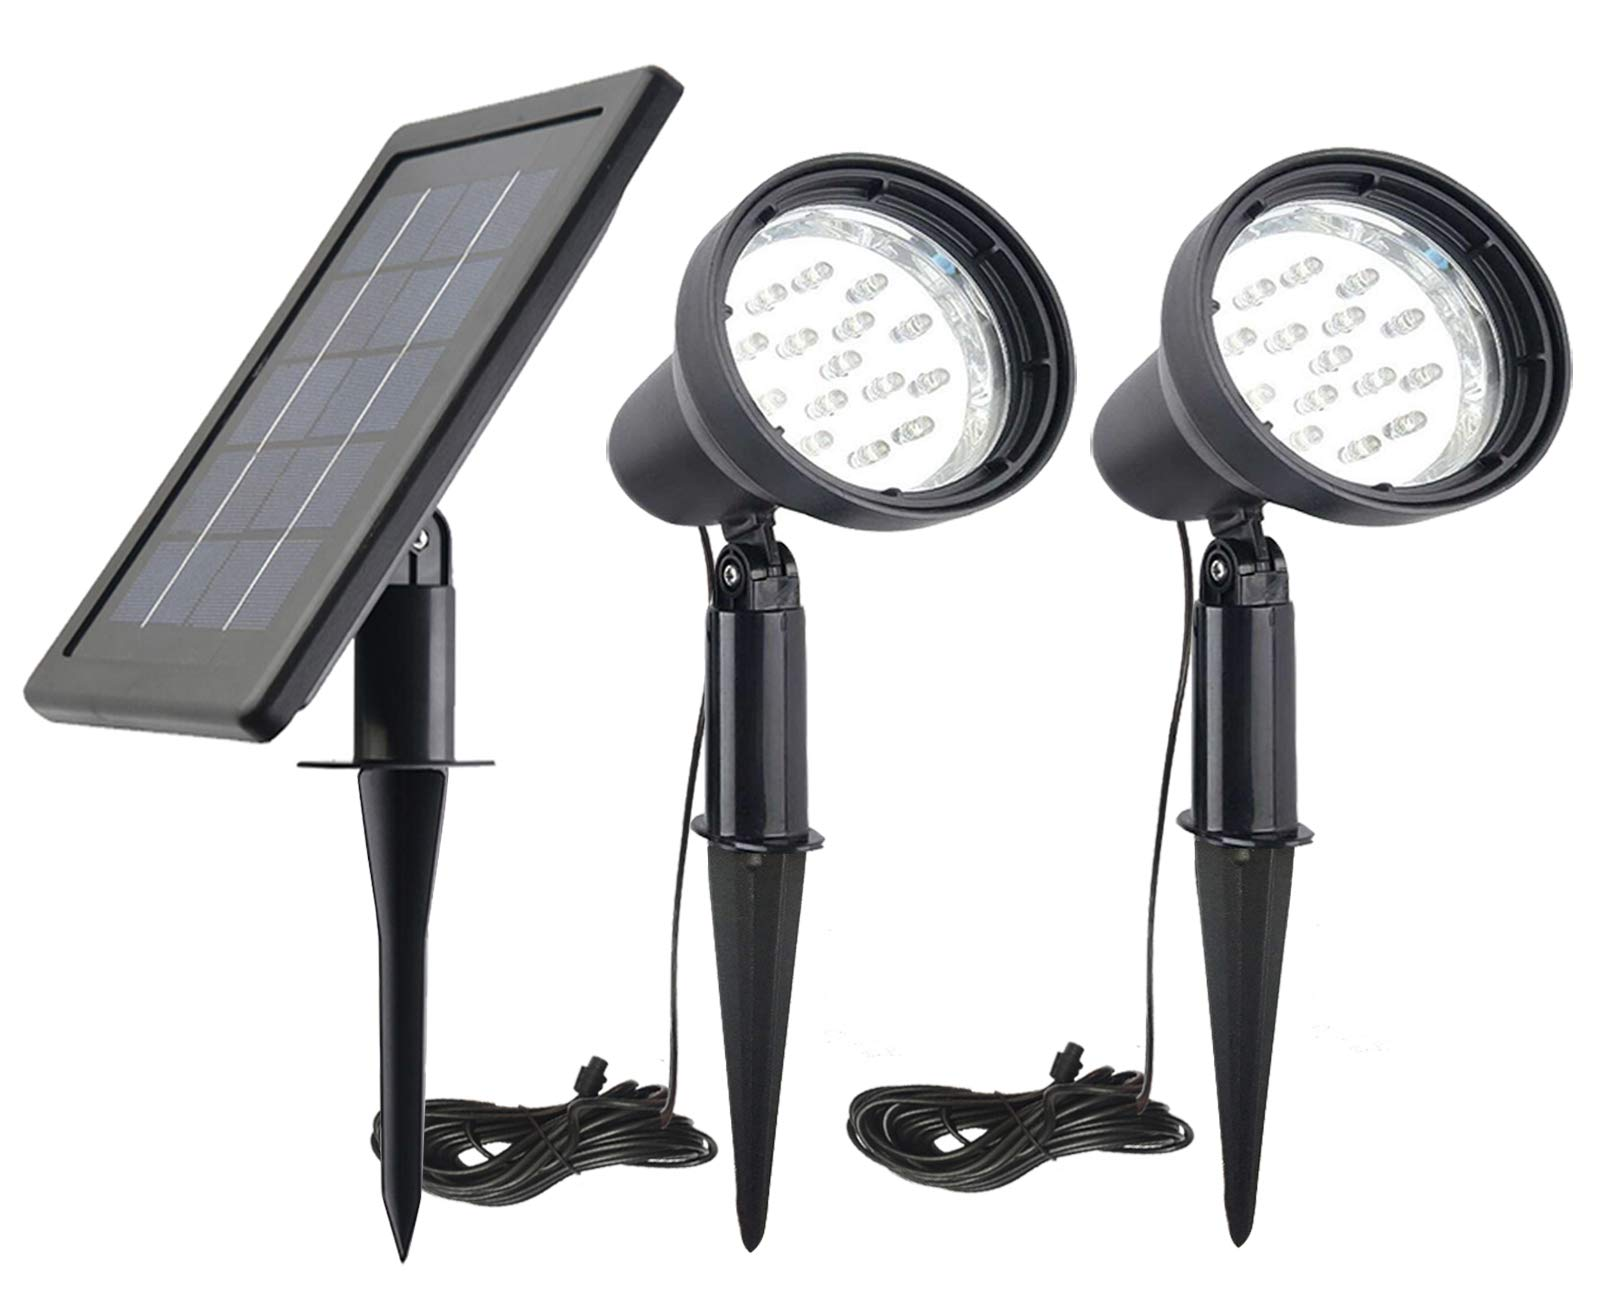 SUNLONG Solar Powered Spot Lights Outdoor Waterproof 2 in 1 Bright Solar SpotLights Power Adjustable for Flag Yard Flagpole Landscape Dusk to Dawn by SUNLONG